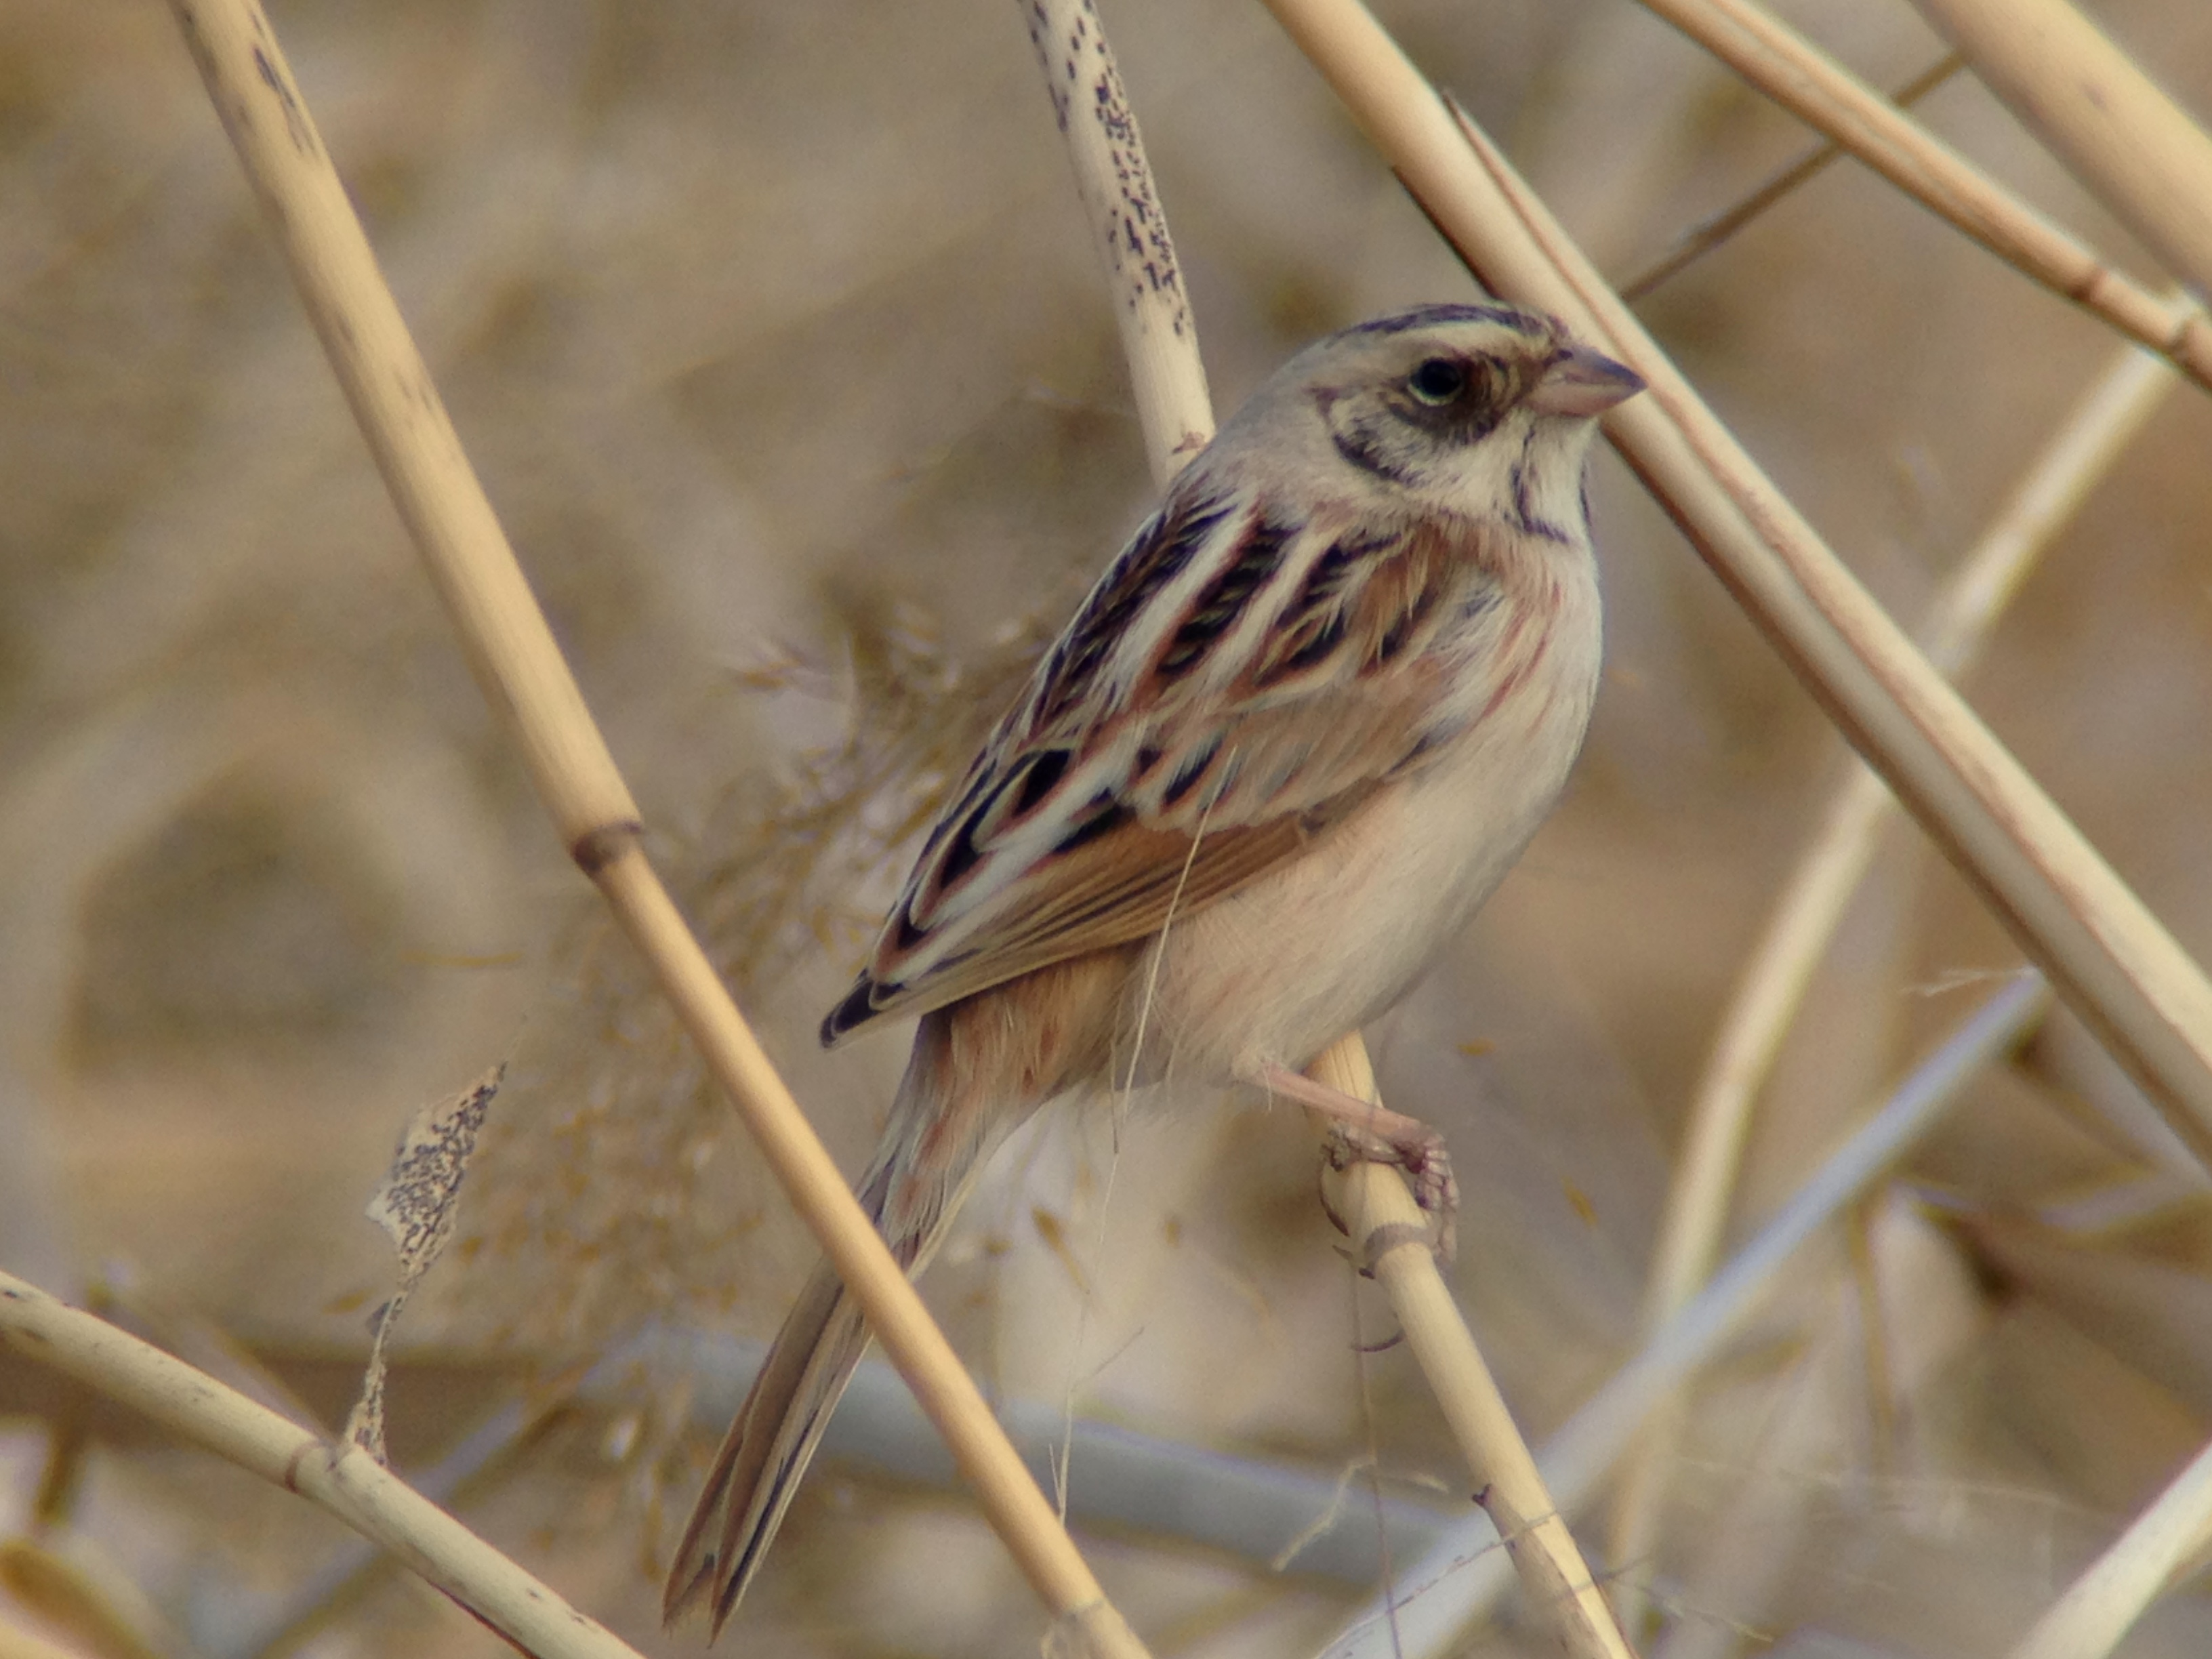 JAPANESE REED BUNTING, Wenyu He, 12 March 2015